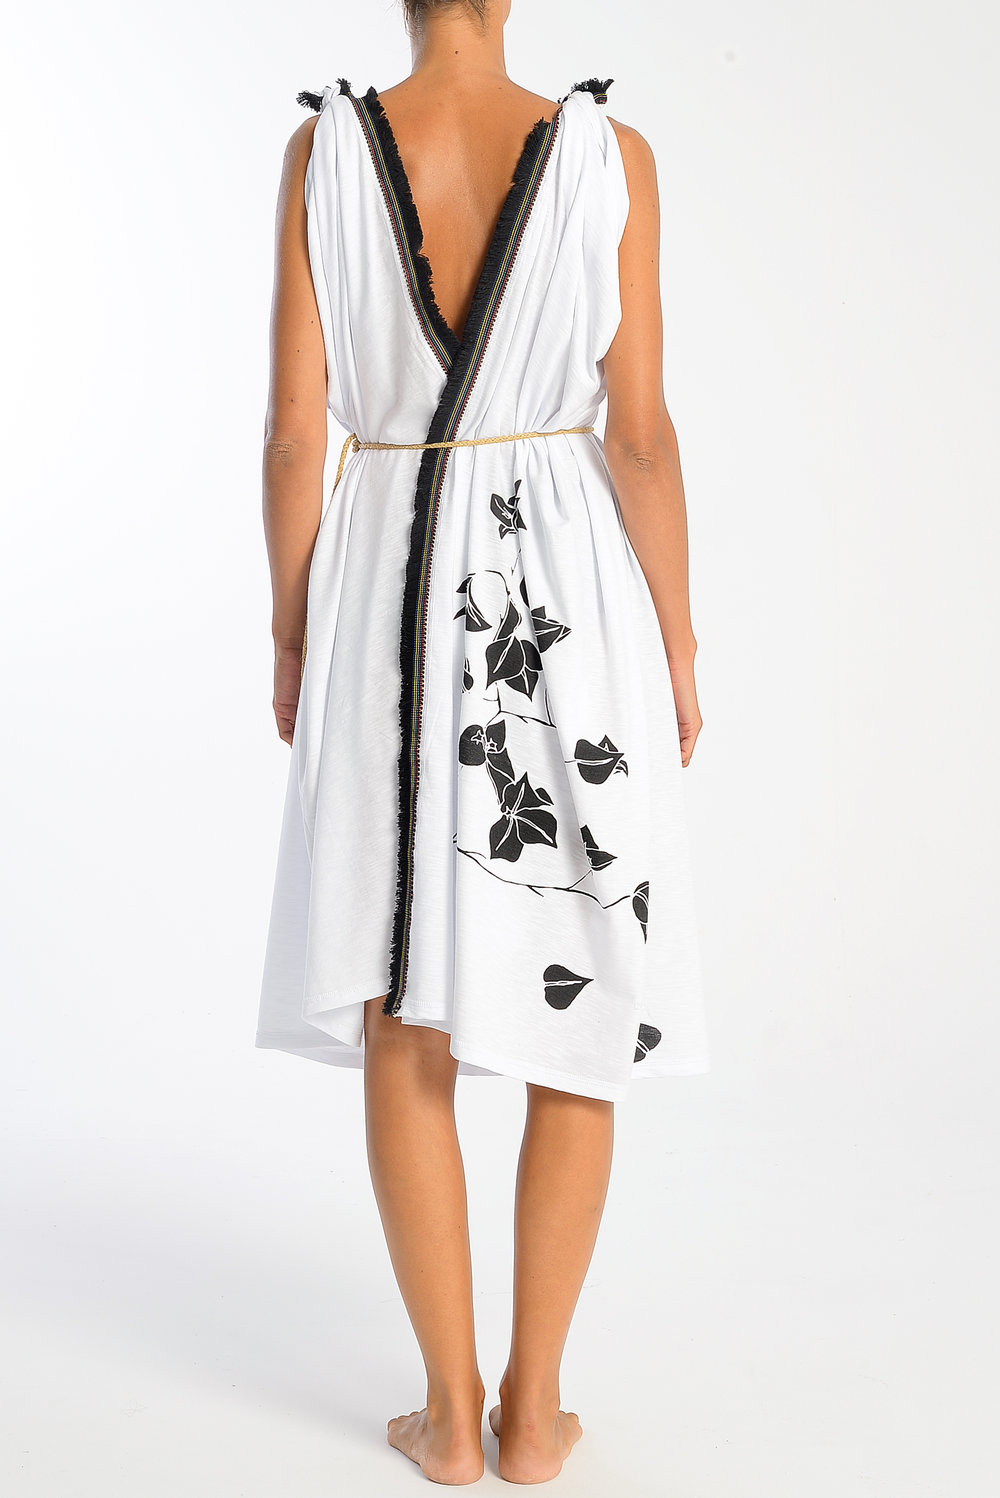 boukamvillea-print-on-white-cotton-pareo-with-trimming-wrap-dress-with-belt-back.jpg